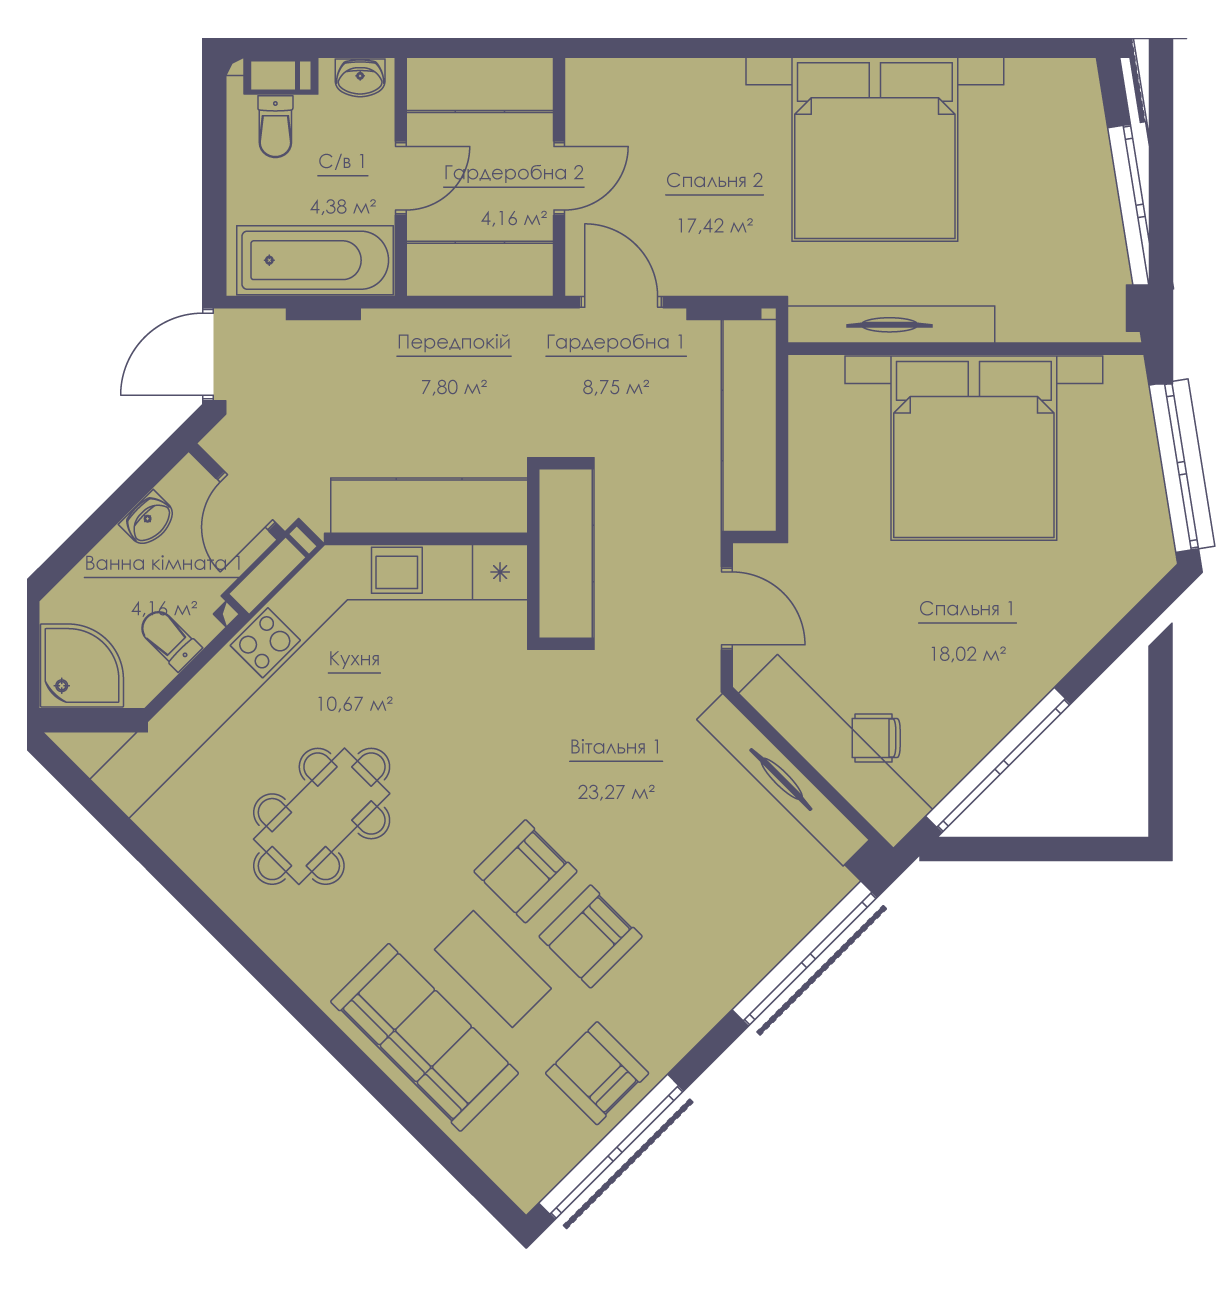 Apartment layout KV_134_3.3a_1_1_12-1